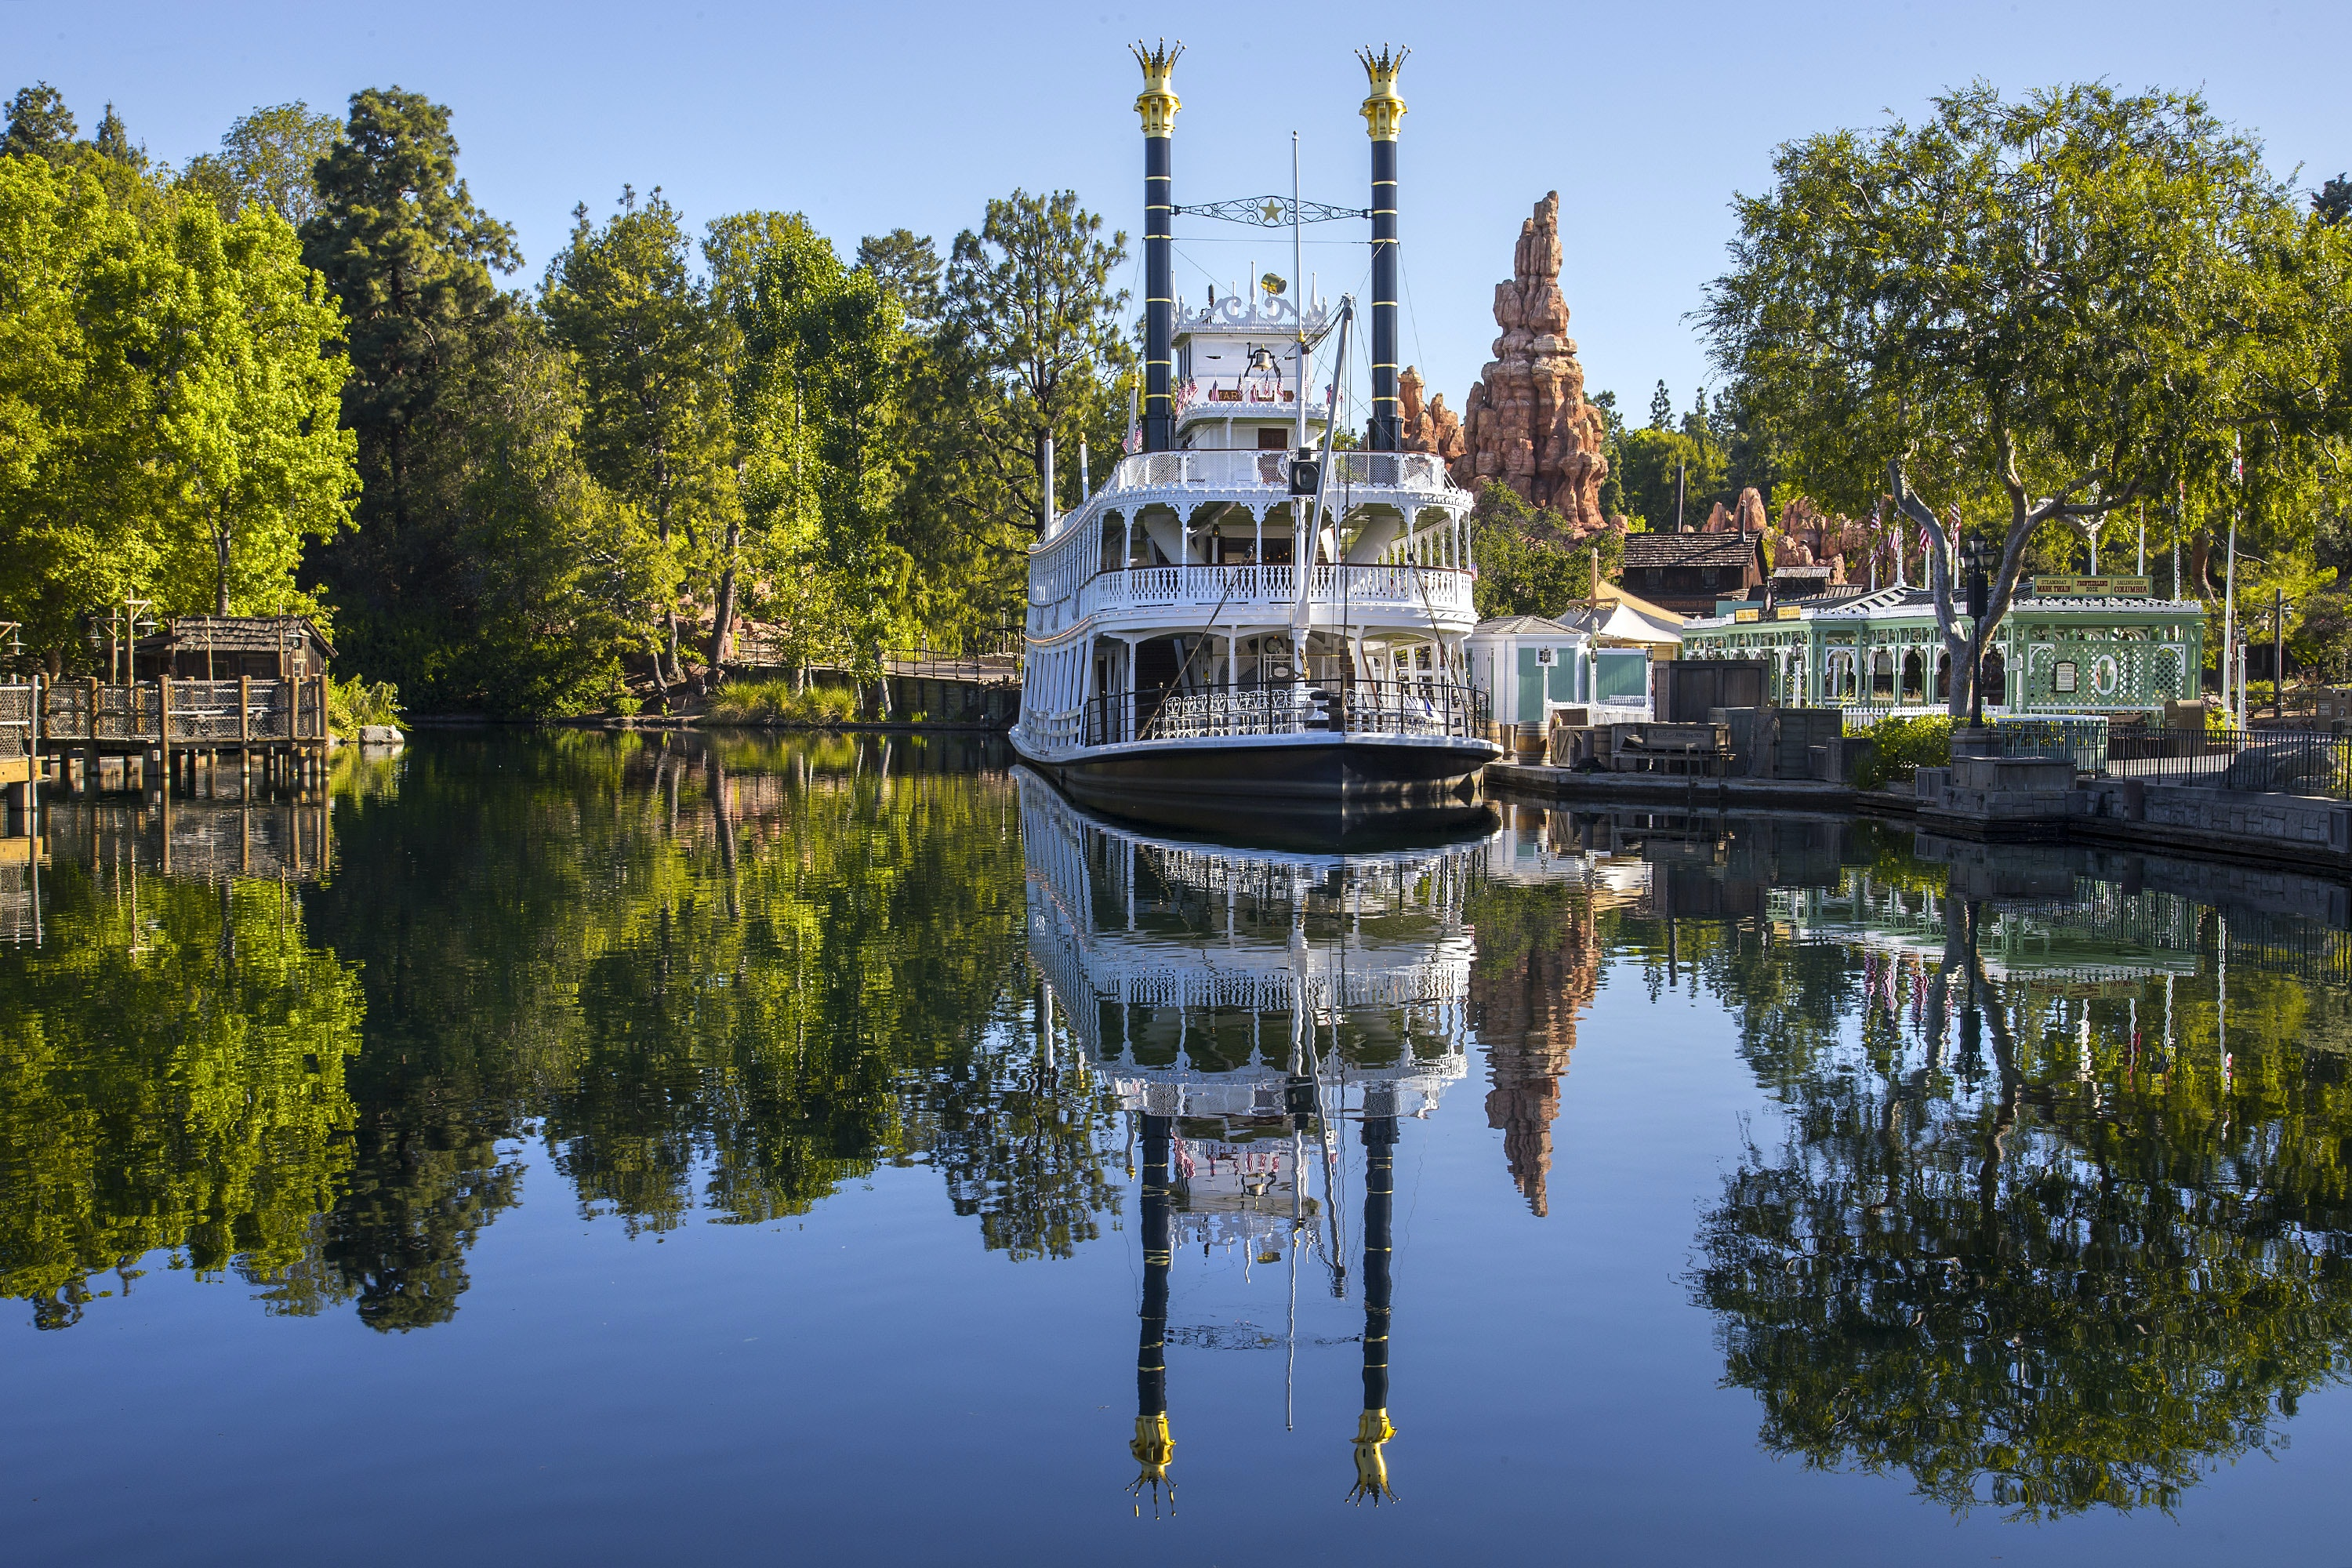 The Mark Twain Riverboat departs from a dock outside Big Thunder Mountain.